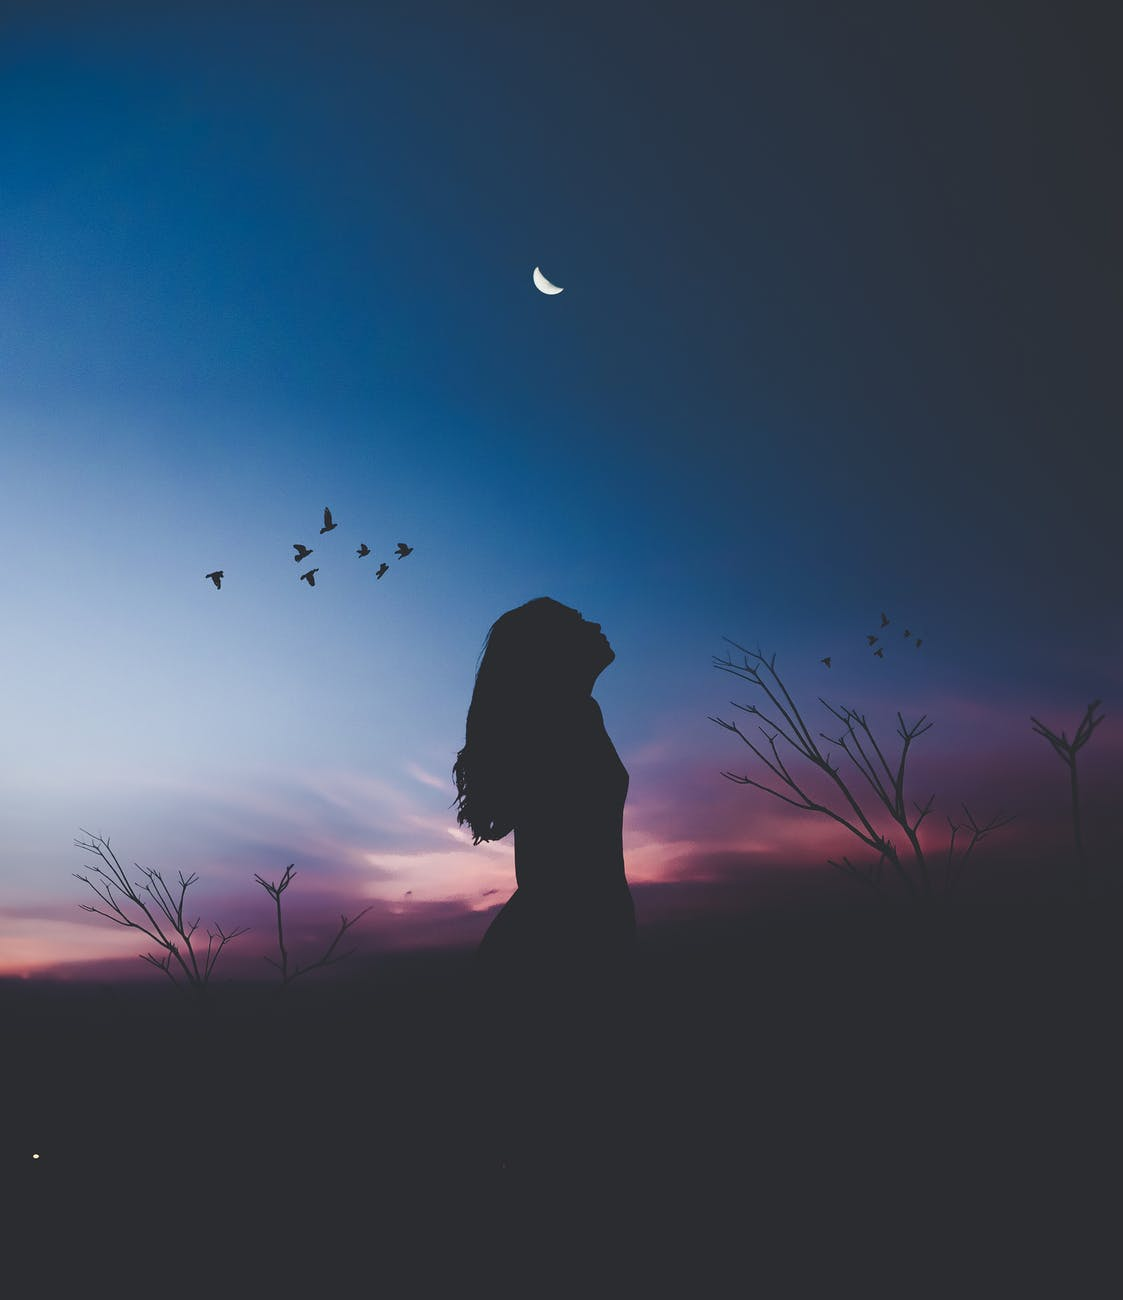 The Astrology of Lent: How to Heal Body, Mind and Soul (and Maybe Even the Planet) During Lent Season -- Even if You Aren't Religious. Here's why giving something up for Lent could benefit you, even if you are not religious. Click through to read the article now.